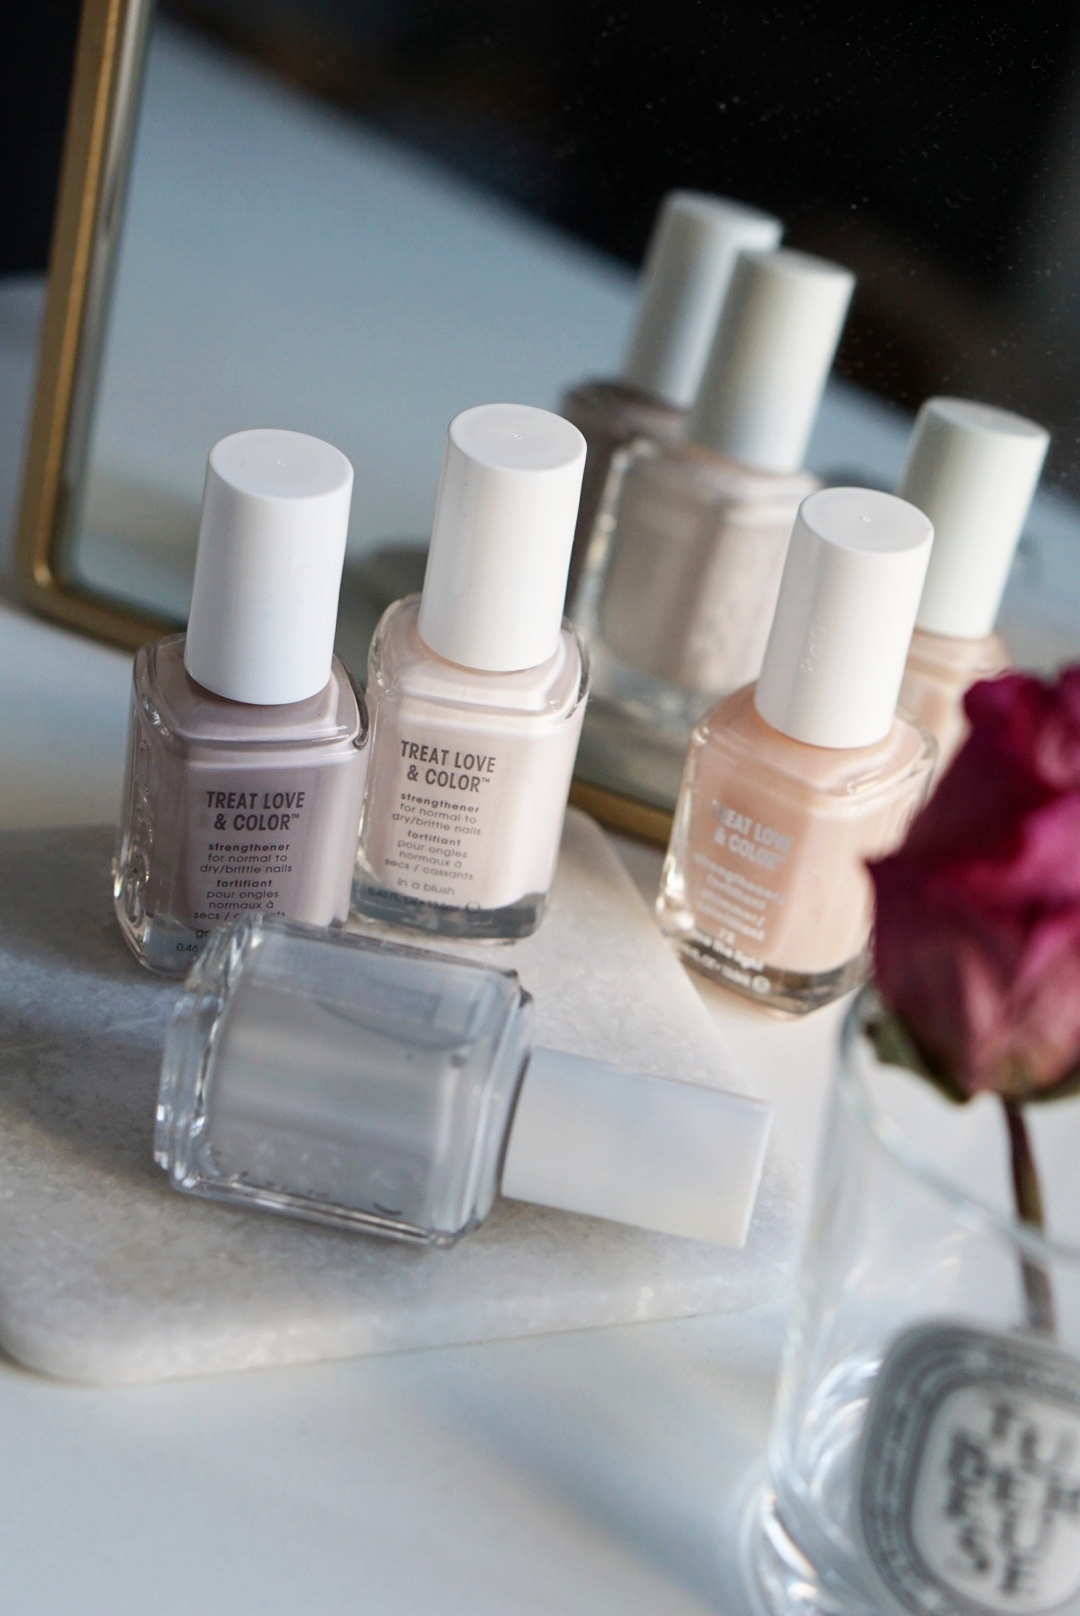 Essie's new Treat Love & Color  line is designed to strengthen your nails.